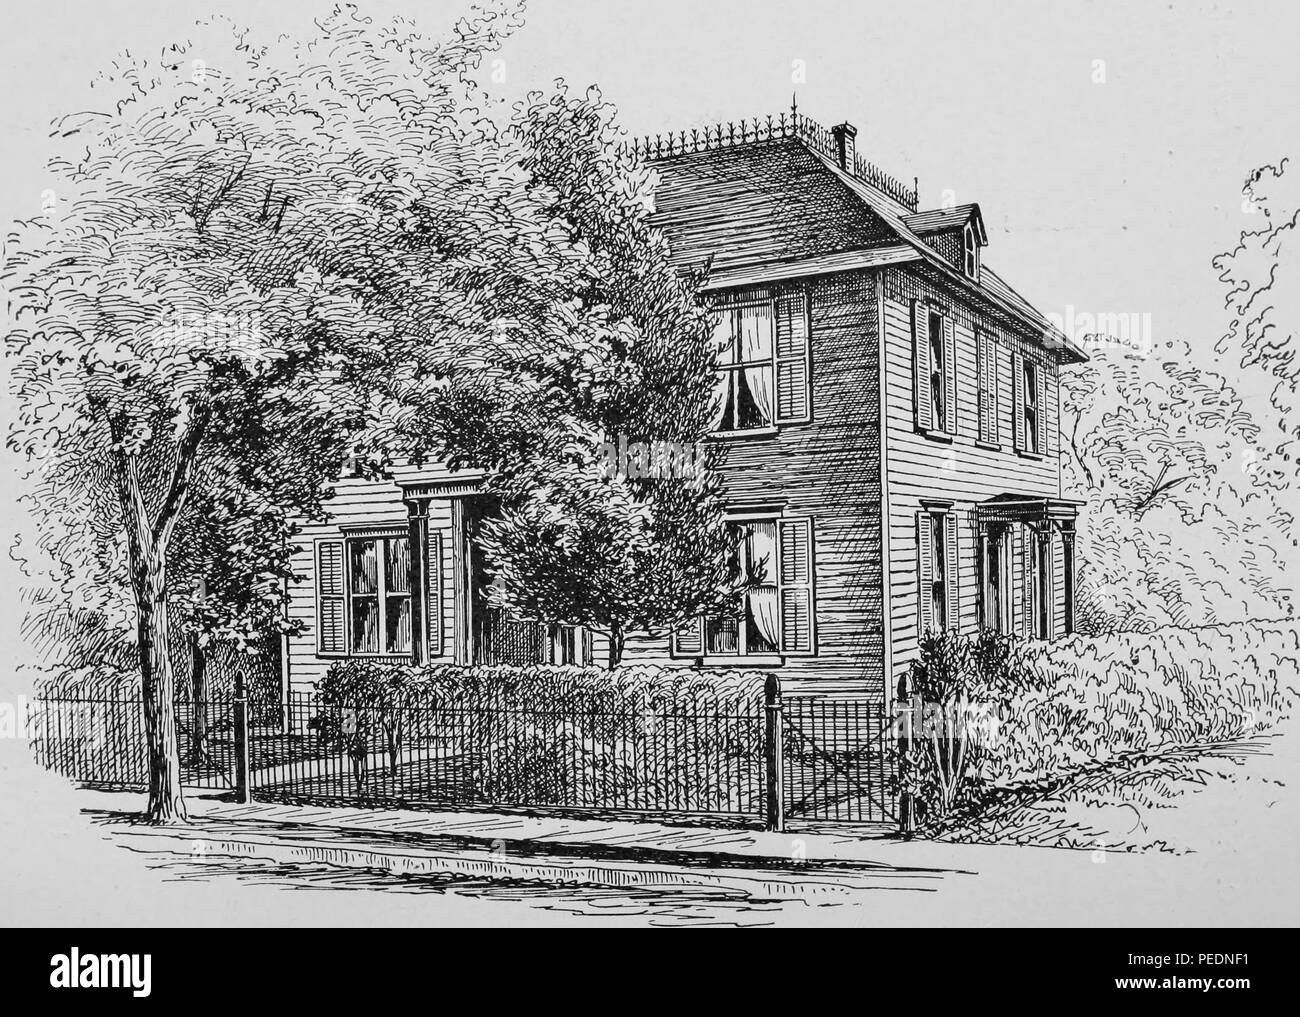 Black and white print illustrating Princeton University's 'Inn, ' a two-story, wood-paneled structure, with a mansard roof, depicted from an angle, with trees and shrubbery in the foreground and background, 1875. Courtesy Internet Archive. () - Stock Image